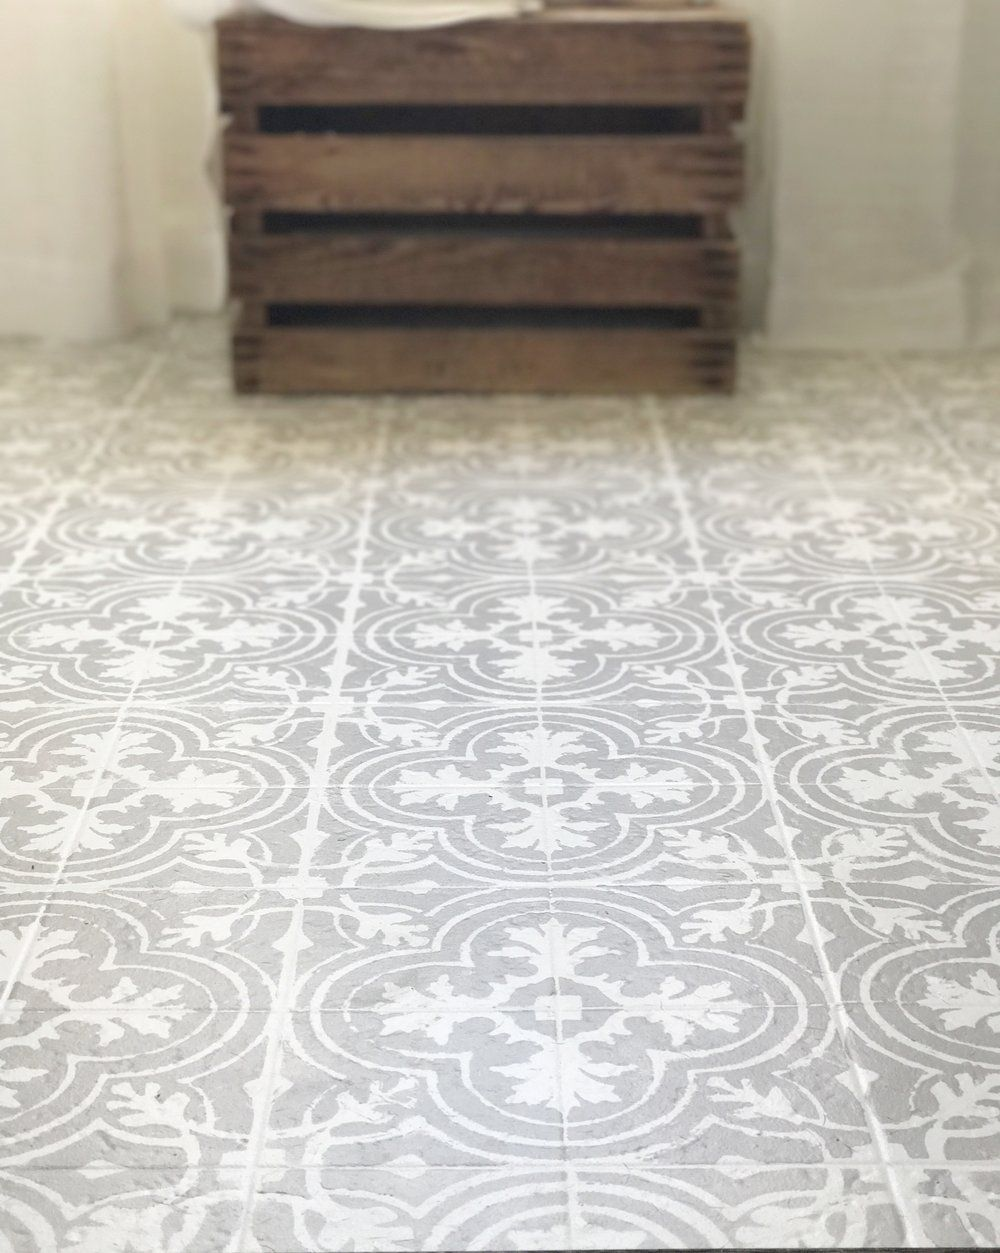 How to paint your linoleum or tile floors to look like patterned how to paint your linoleum or tile floors to look like patterned cement tile tutorial dailygadgetfo Images